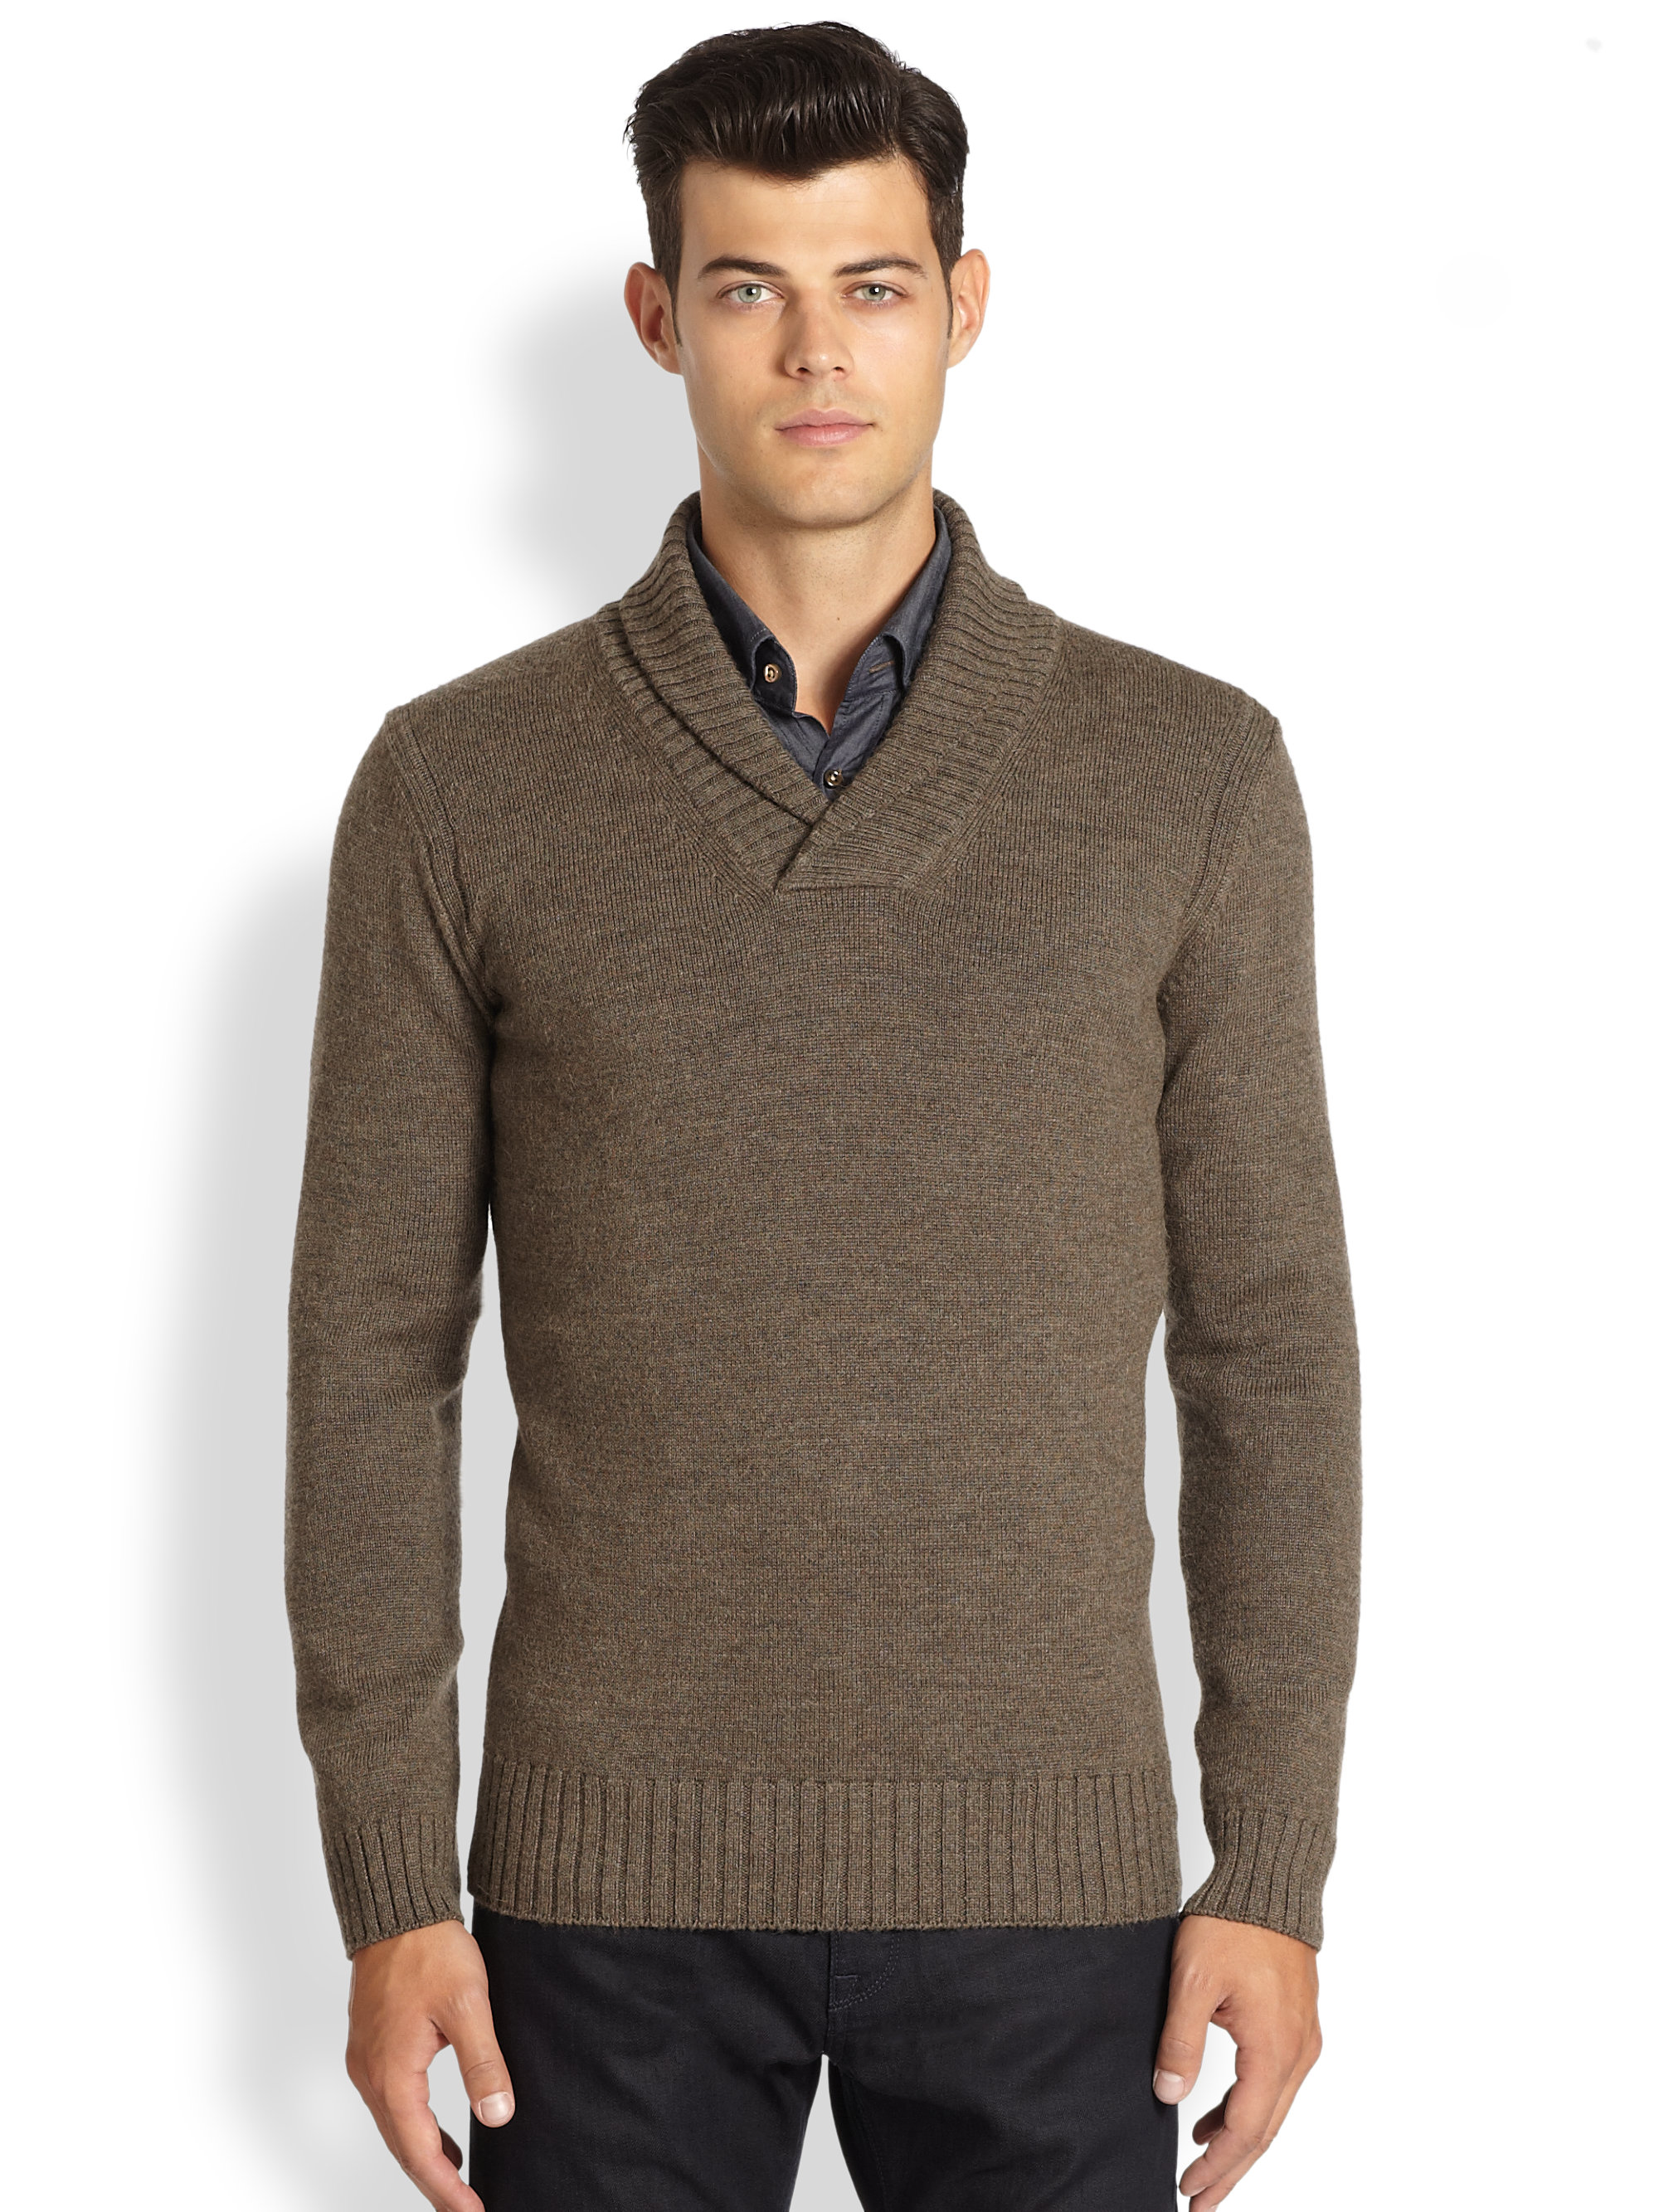 boss by hugo boss mustafa shawl collar sweater in brown for men dark. Black Bedroom Furniture Sets. Home Design Ideas